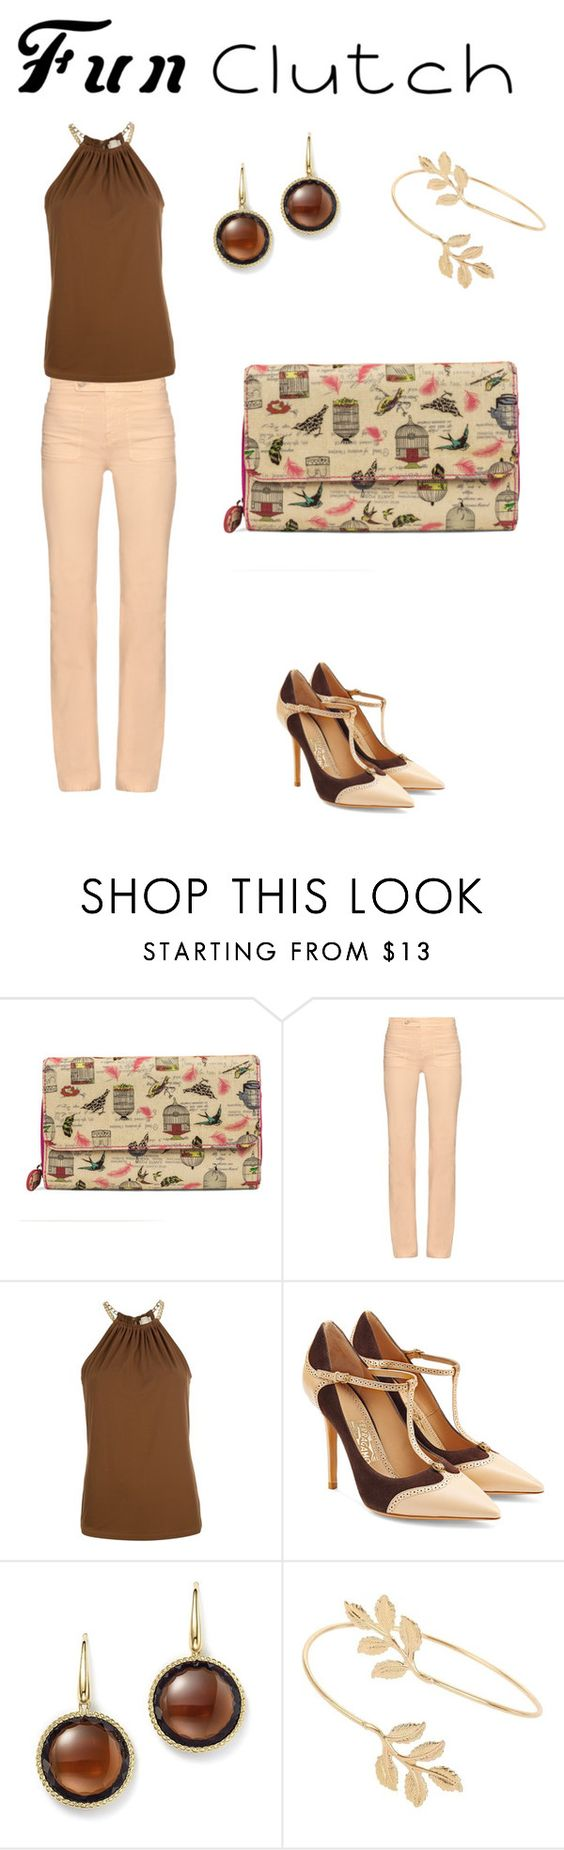 """""""Fun Clutch"""" by lawmouse ❤ liked on Polyvore featuring Mundi, See by Chloé, MICHAEL Michael Kors, Salvatore Ferragamo, Roberto Coin and Miss Selfridge"""